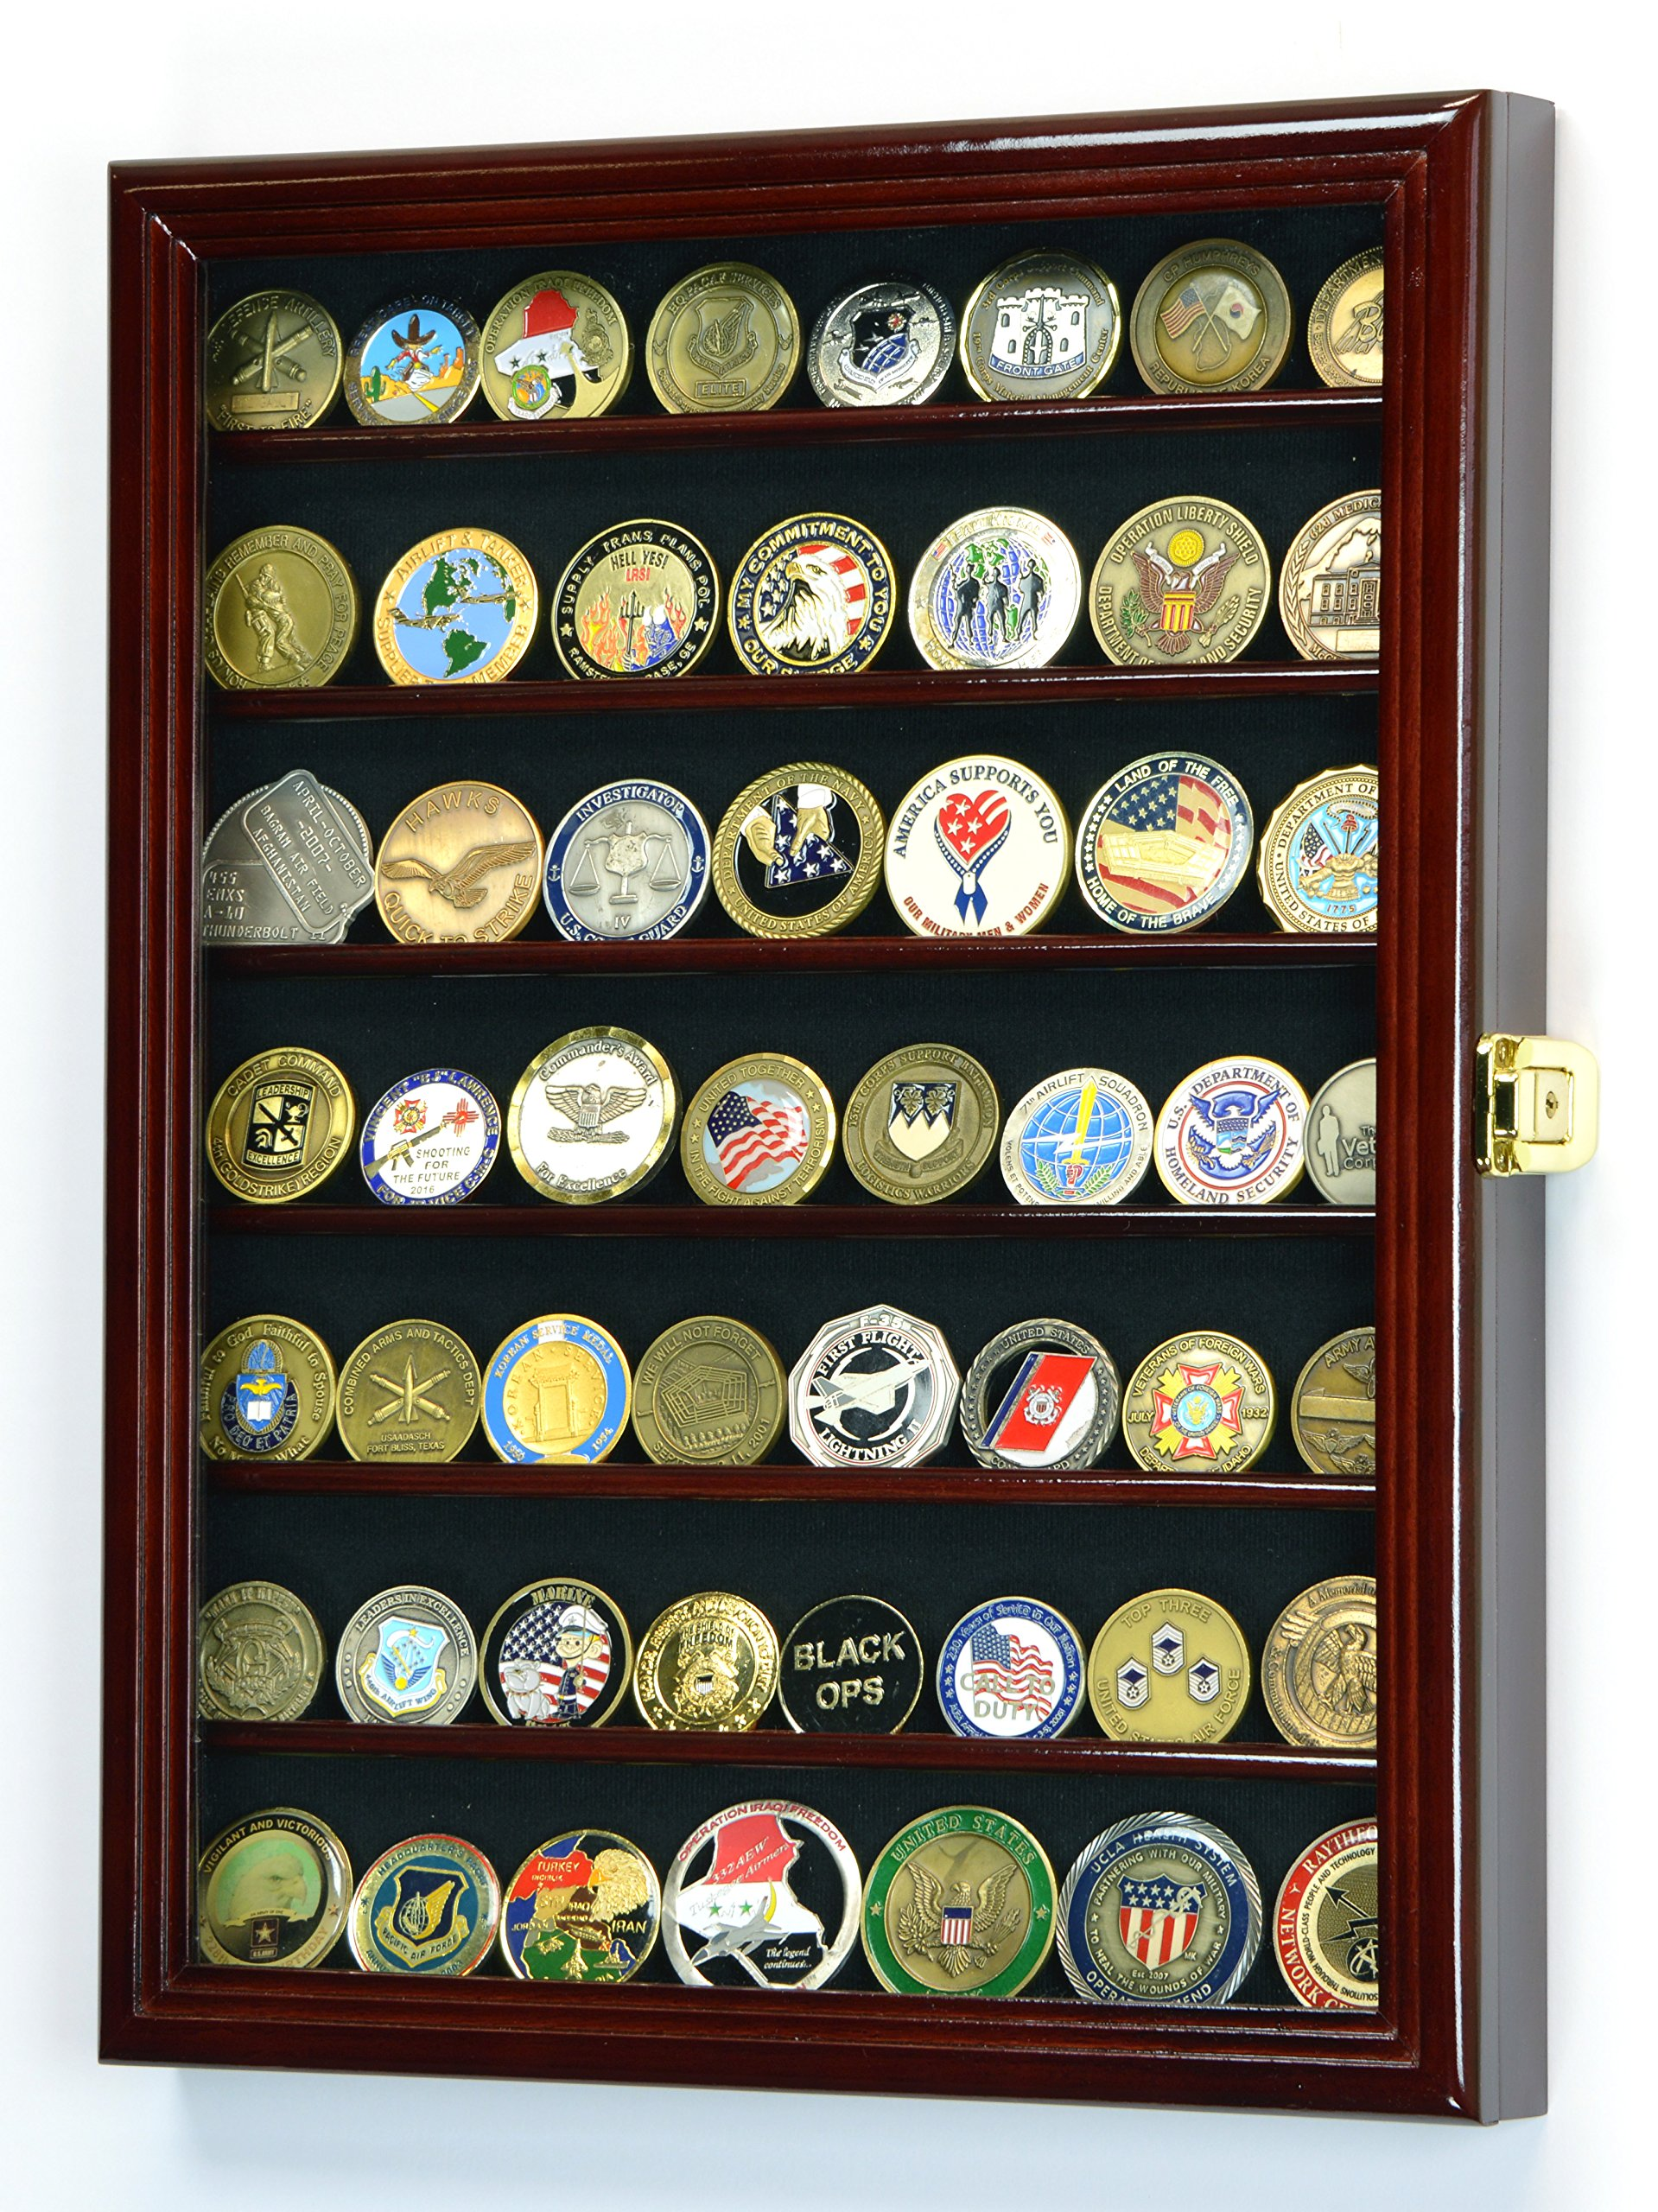 Military Challenge Coin Display Case Cabinet Holder Wall Rack 98% UV Lockable, Cherry